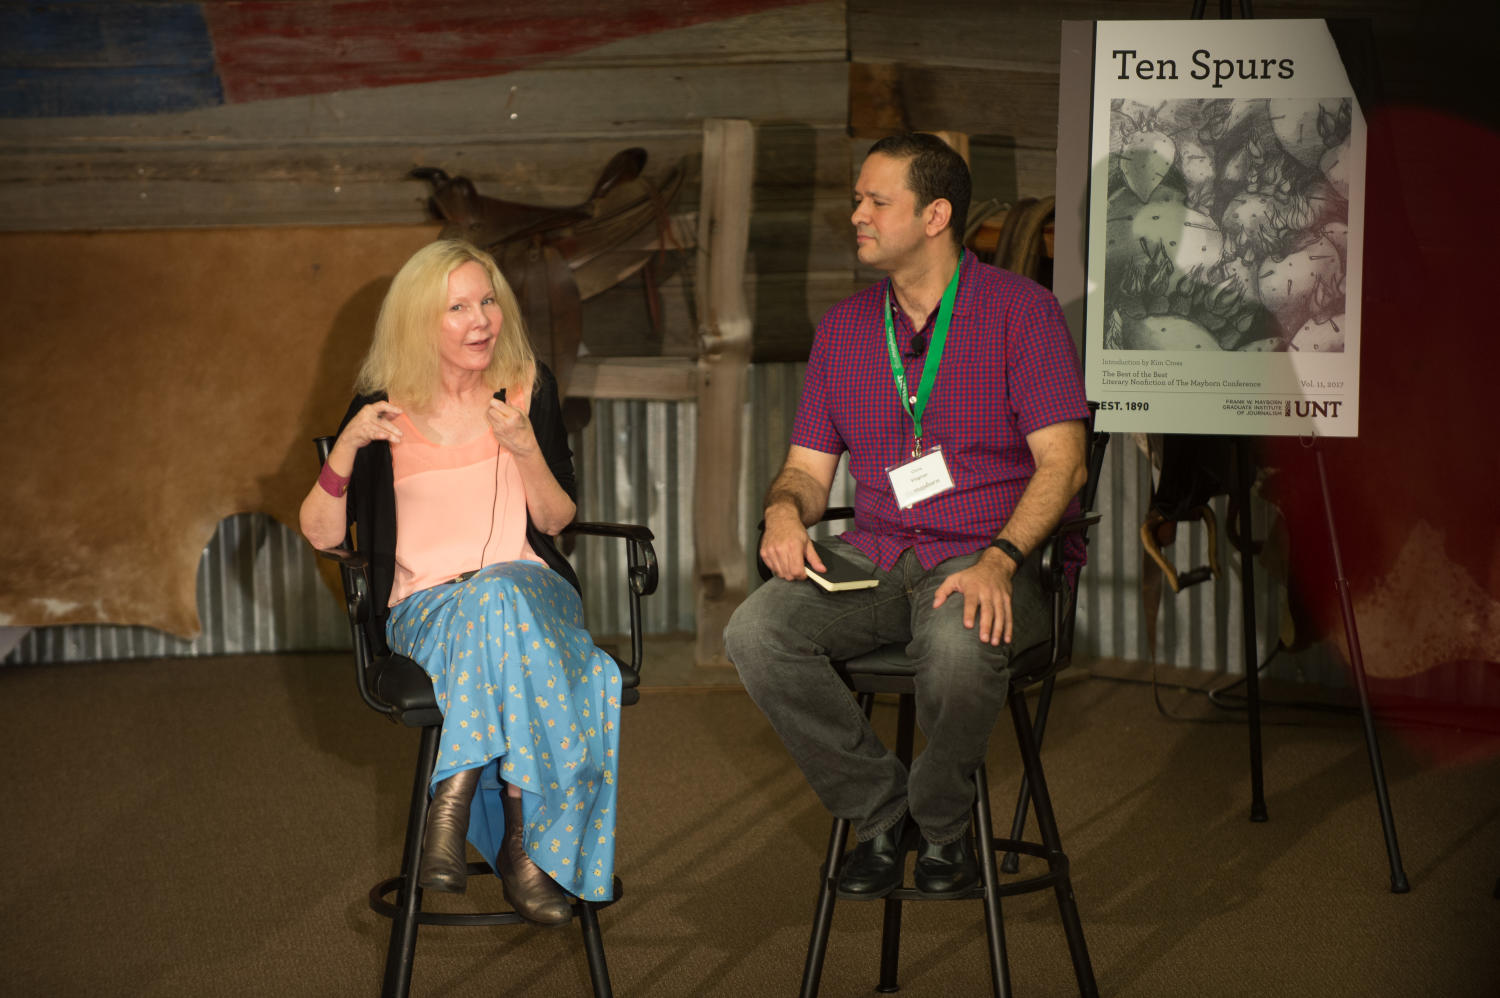 [Katherine Boo and Chris Vognar sitting on stage], Photograph of Katherine Boo and Chris Vognar sitting on stage in the Austin Ranch Banquet Hall. Boo is a keynote speaker for the Mayborn Literary Nonfiction Conference and Vognar is her moderator. To their side is the 2017 Ten Spurs anthology cover that was revealed earlier. Everything is taking place on the grounds of the Hilton DFW Lakes Executive Conference Center in Grapevine, TX.,